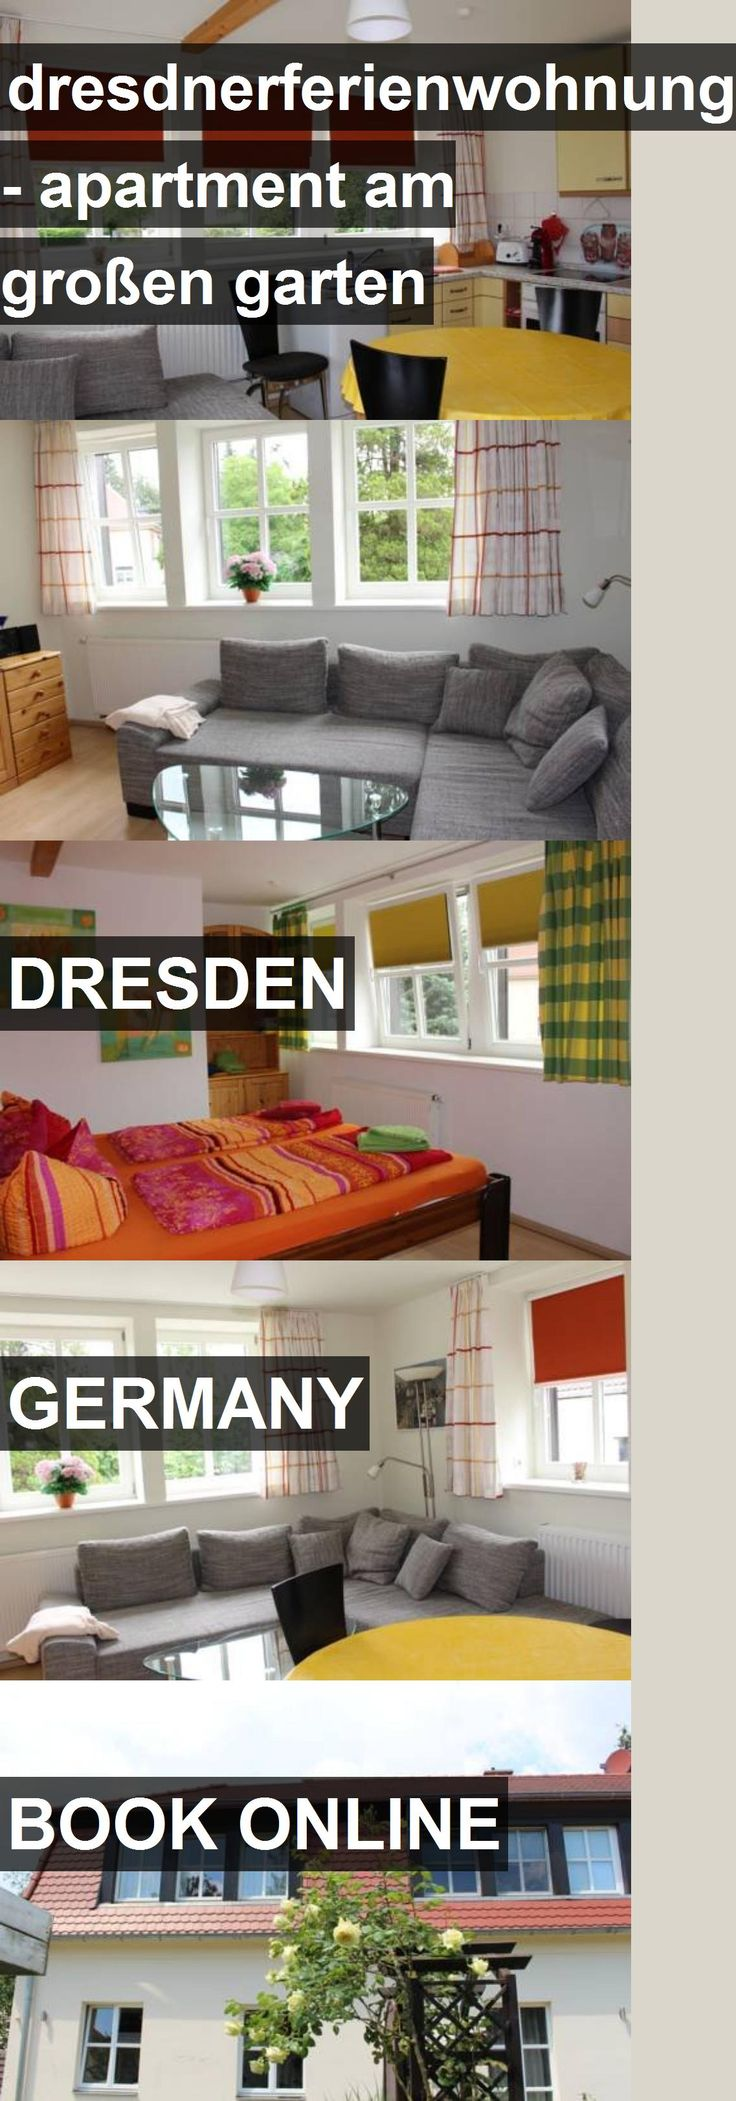 dresdnerferienwohnung - apartment am großen garten in Dresden, Germany. For more information, photos, reviews and best prices please follow the link. #Germany #Dresden #travel #vacation #apartment